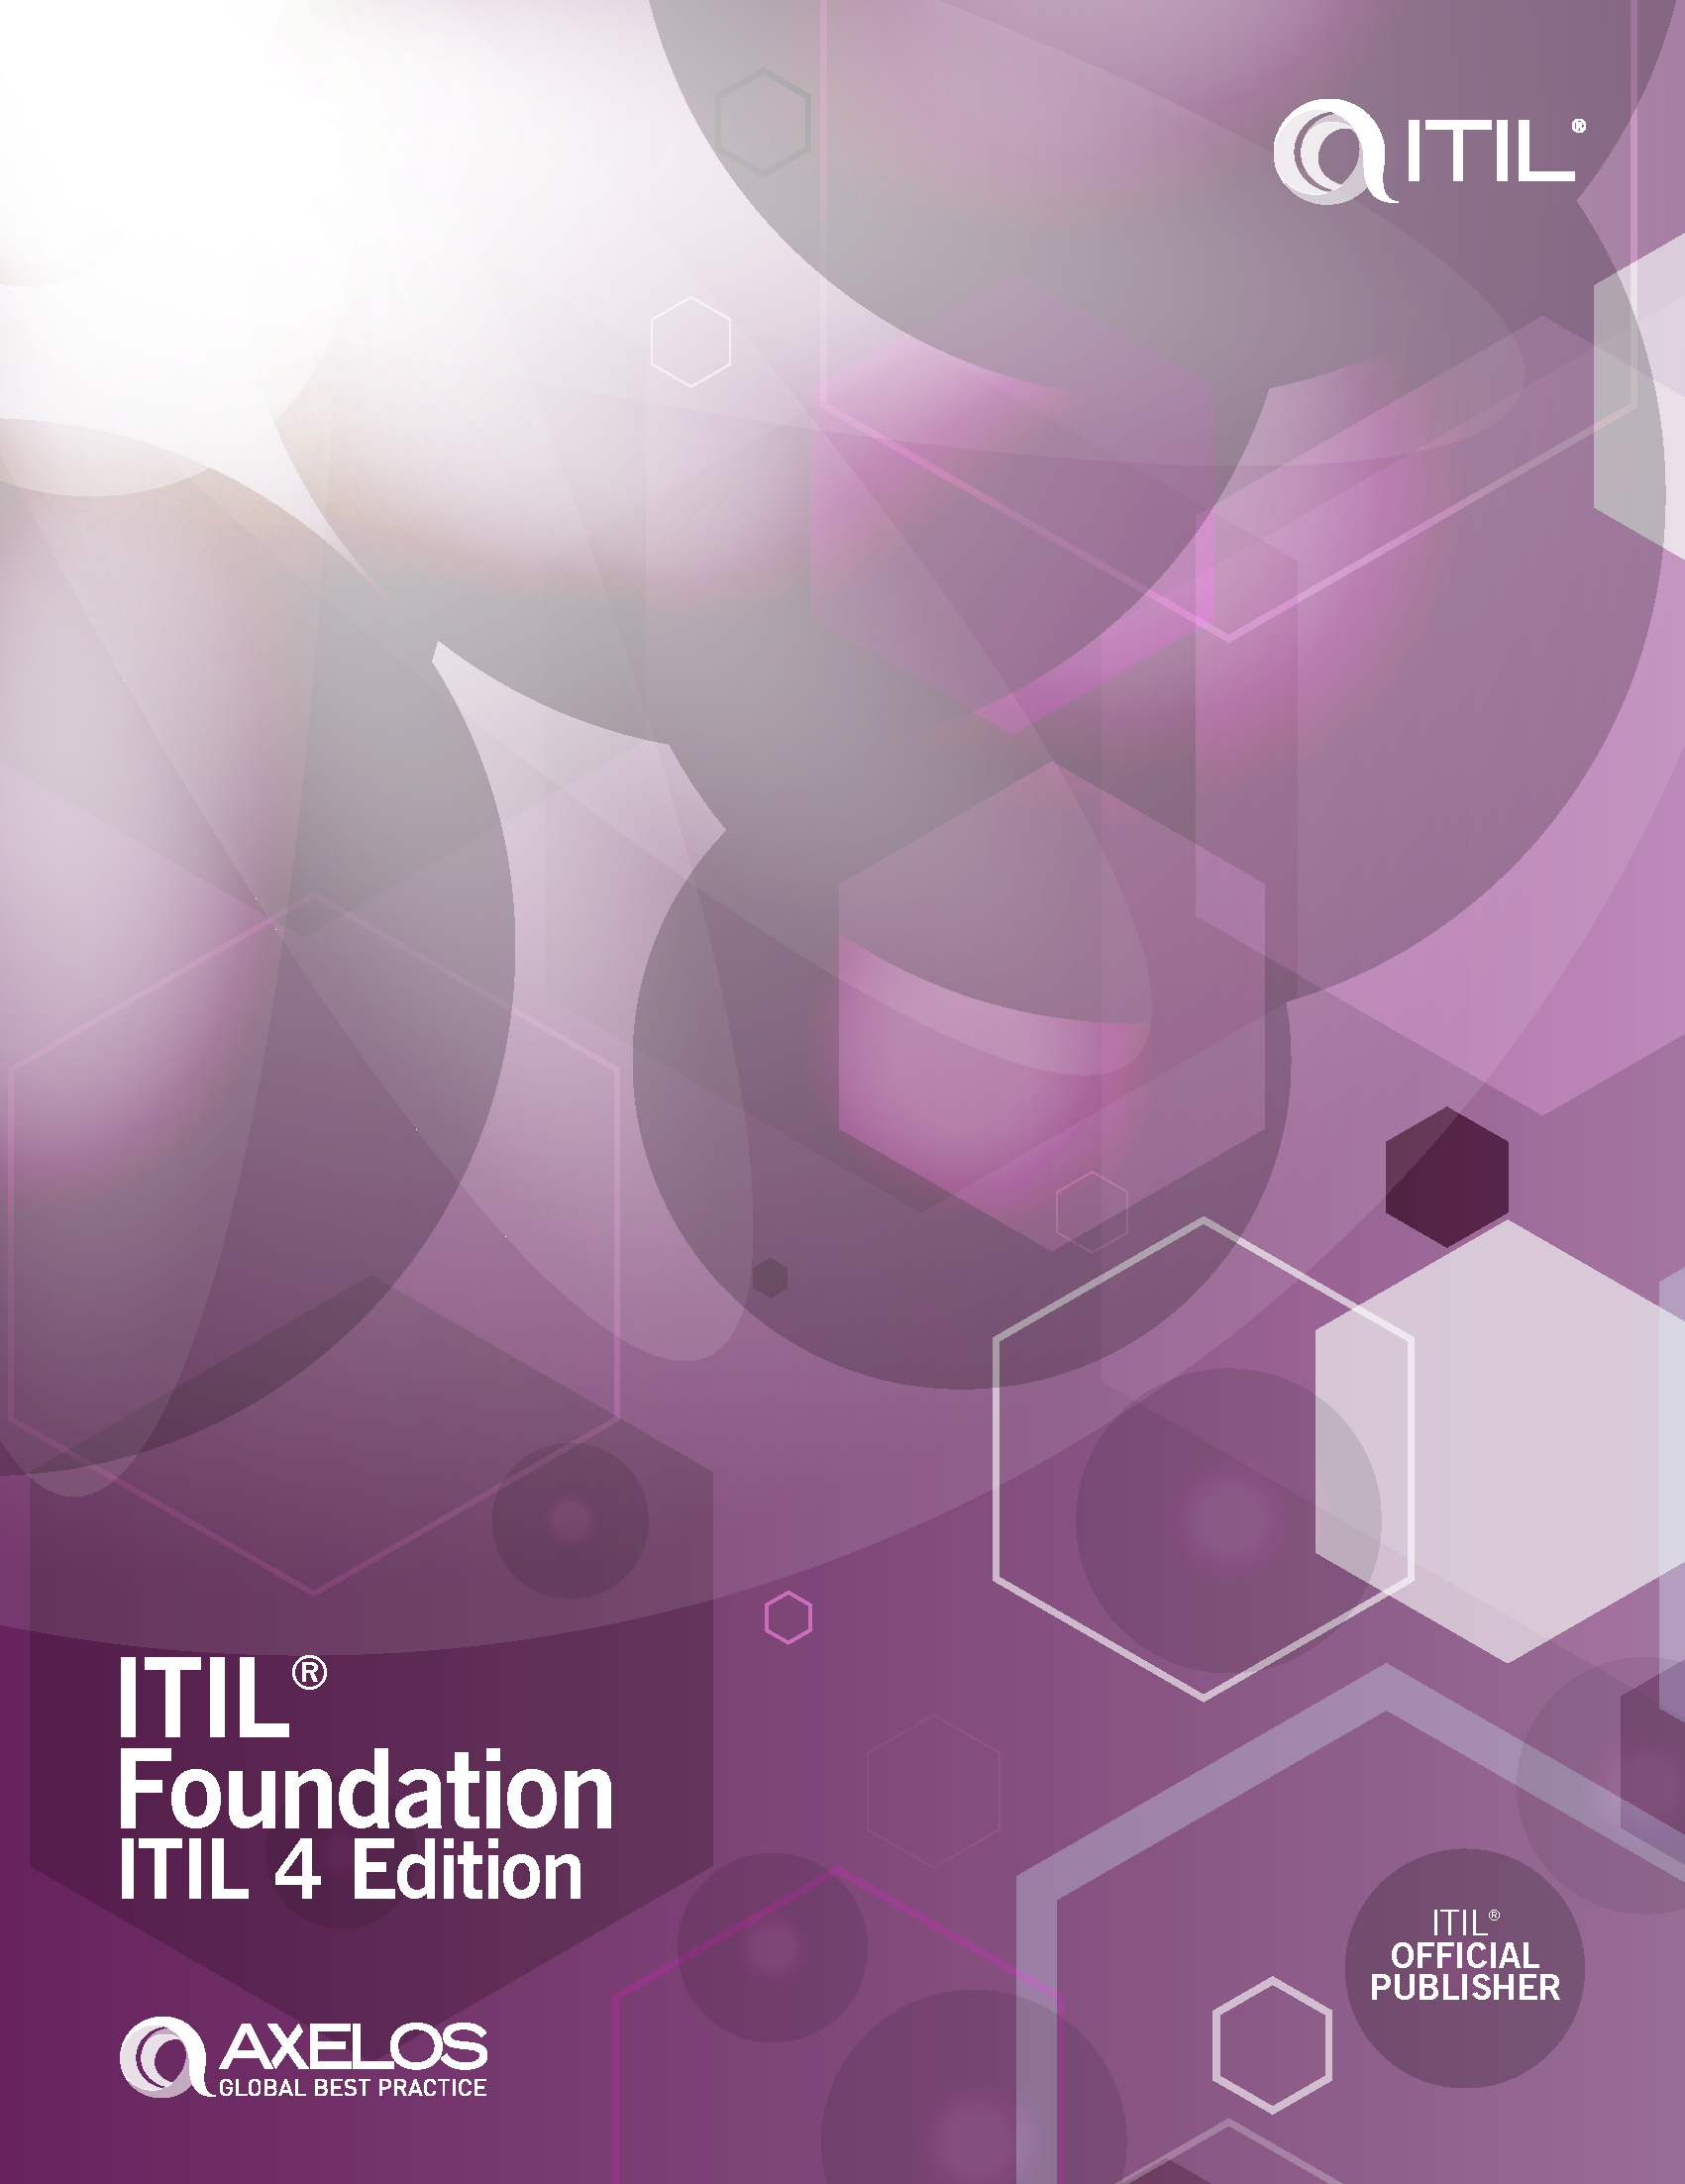 ITIL 4, ITSM, ITIL, Heldesk, Help Desk, Service Desk, IT Service Management, ITSM Solutions and Implementation